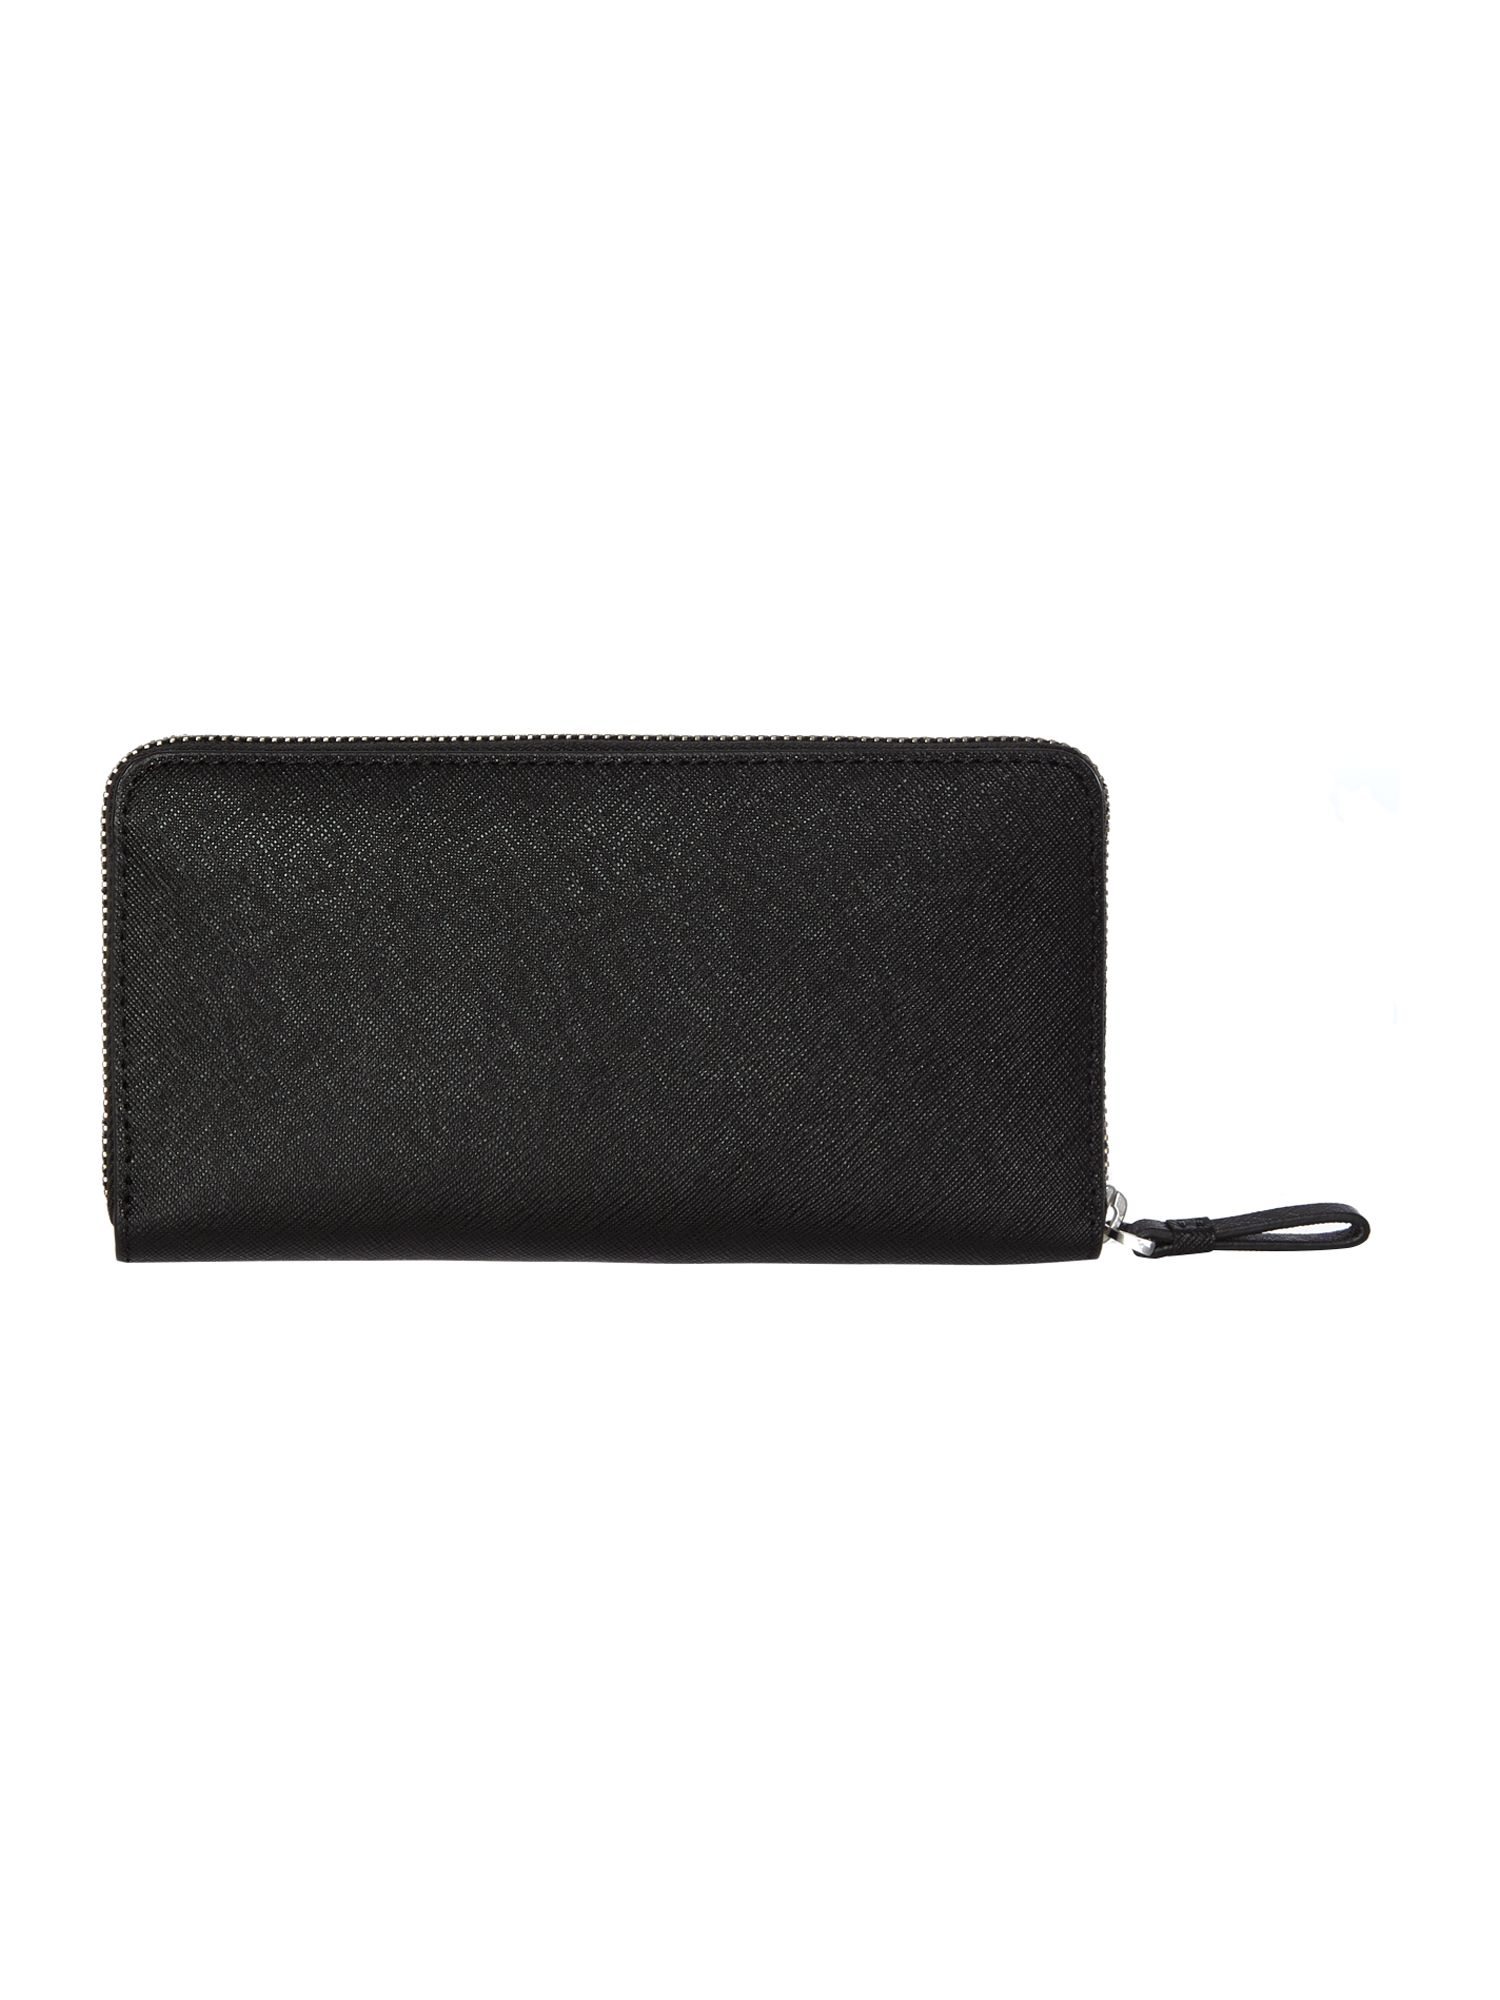 Sofie black saffiano zip around purse